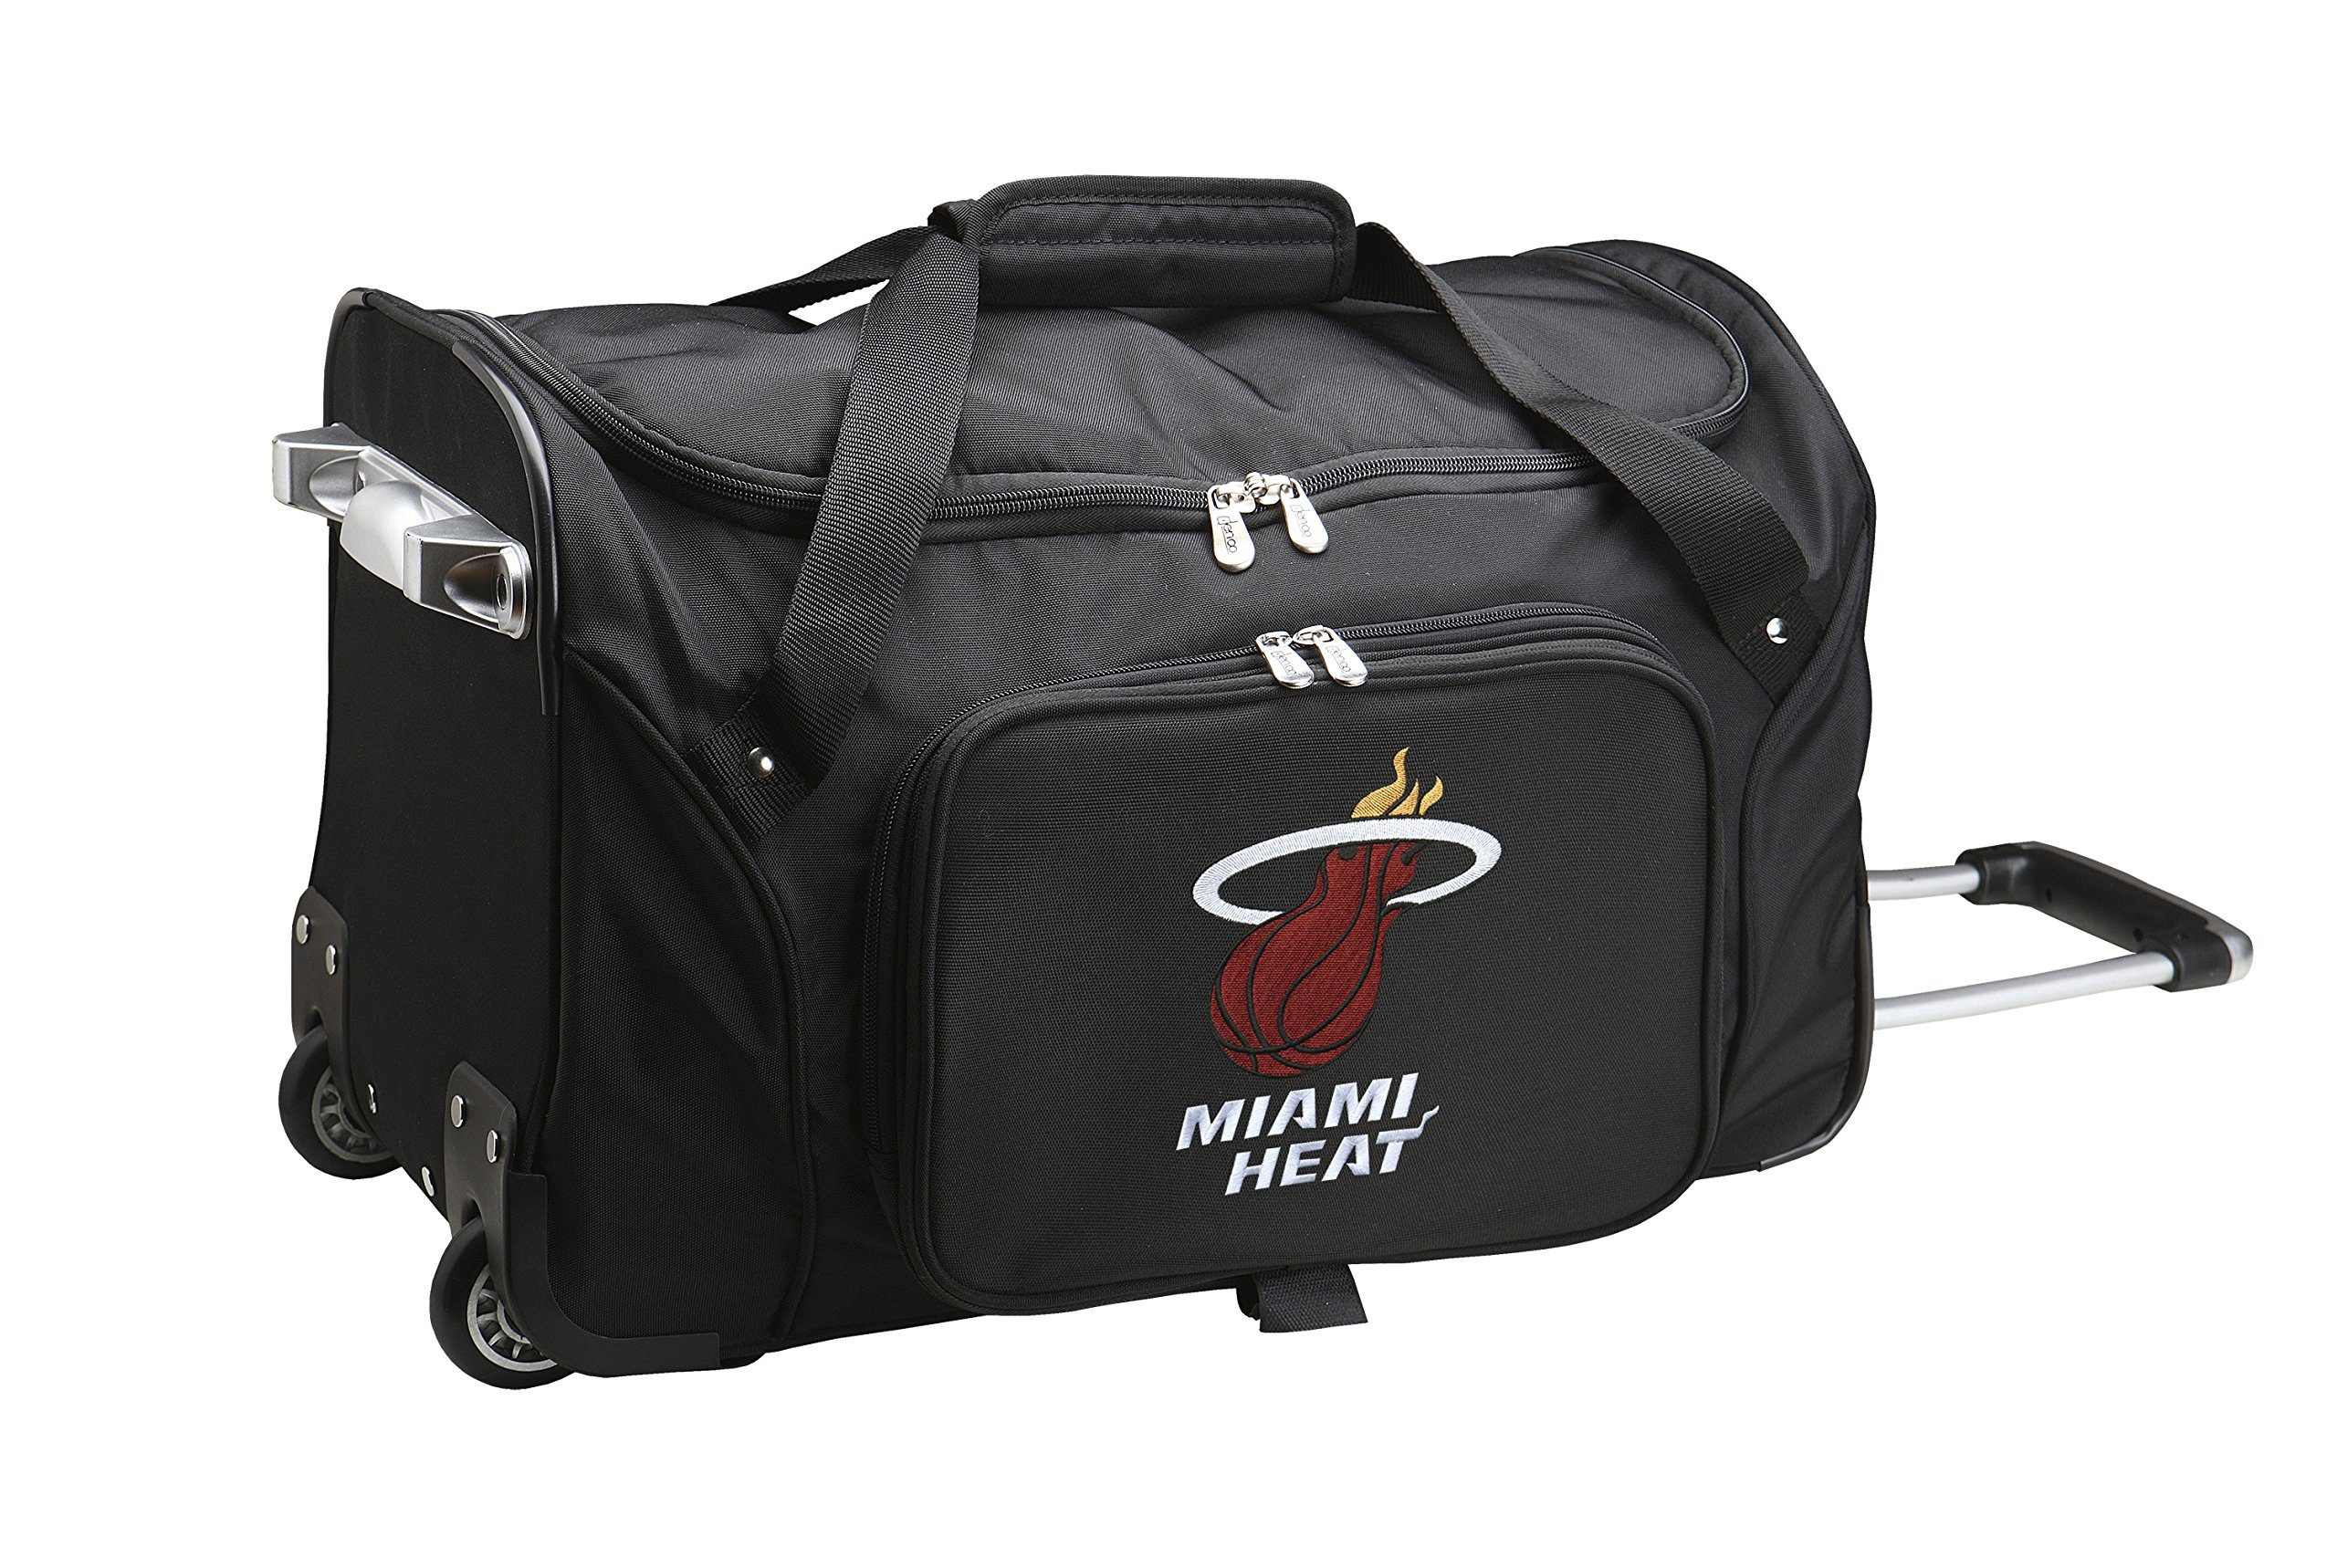 NBA Miami Heat Wheeled Duffle Bag, 22 x 12 x 5.5'', Black